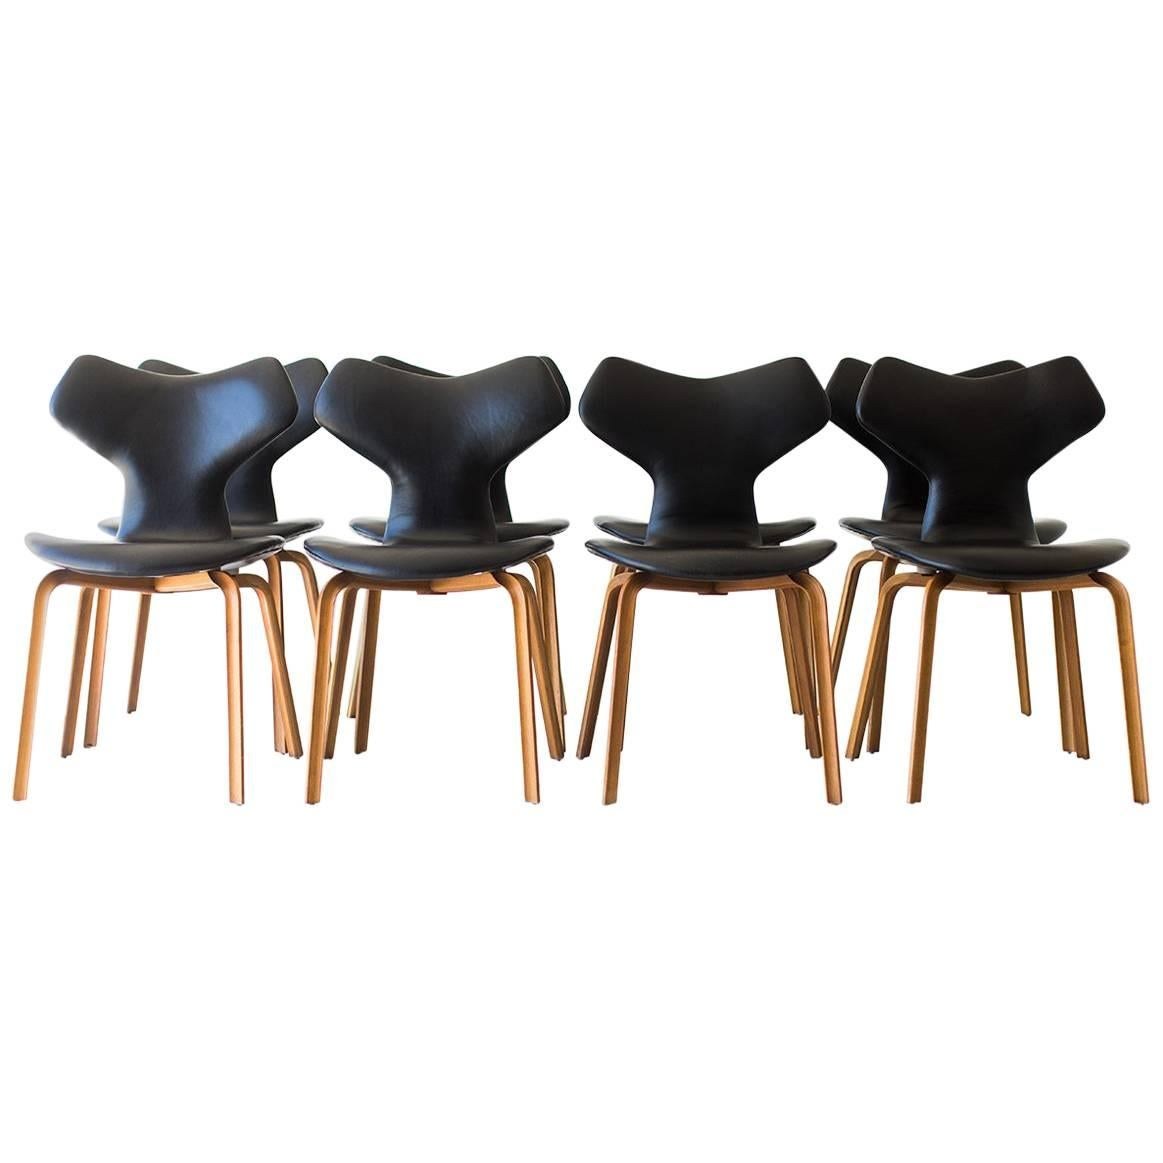 Arne Jacobsen Leather Grand Prix Dining Chairs For Fritz Hansen